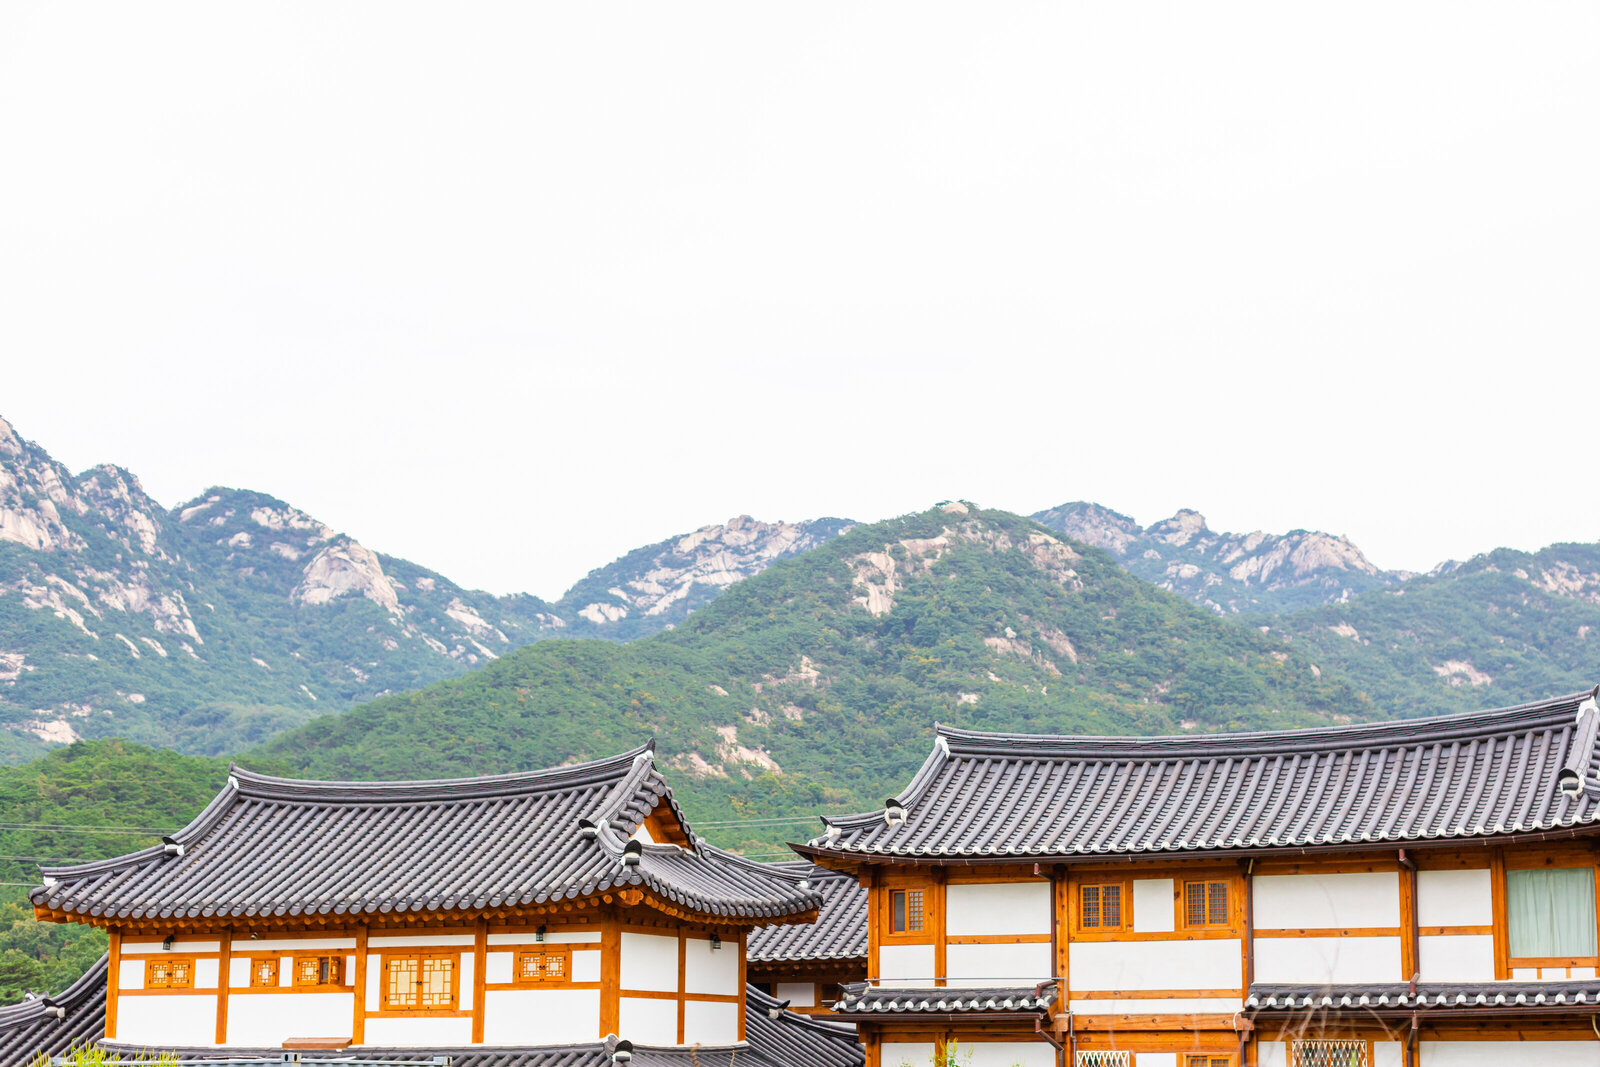 003-KBP-South-korea-Seoul-Eunpyeong-Hanok-Village-2